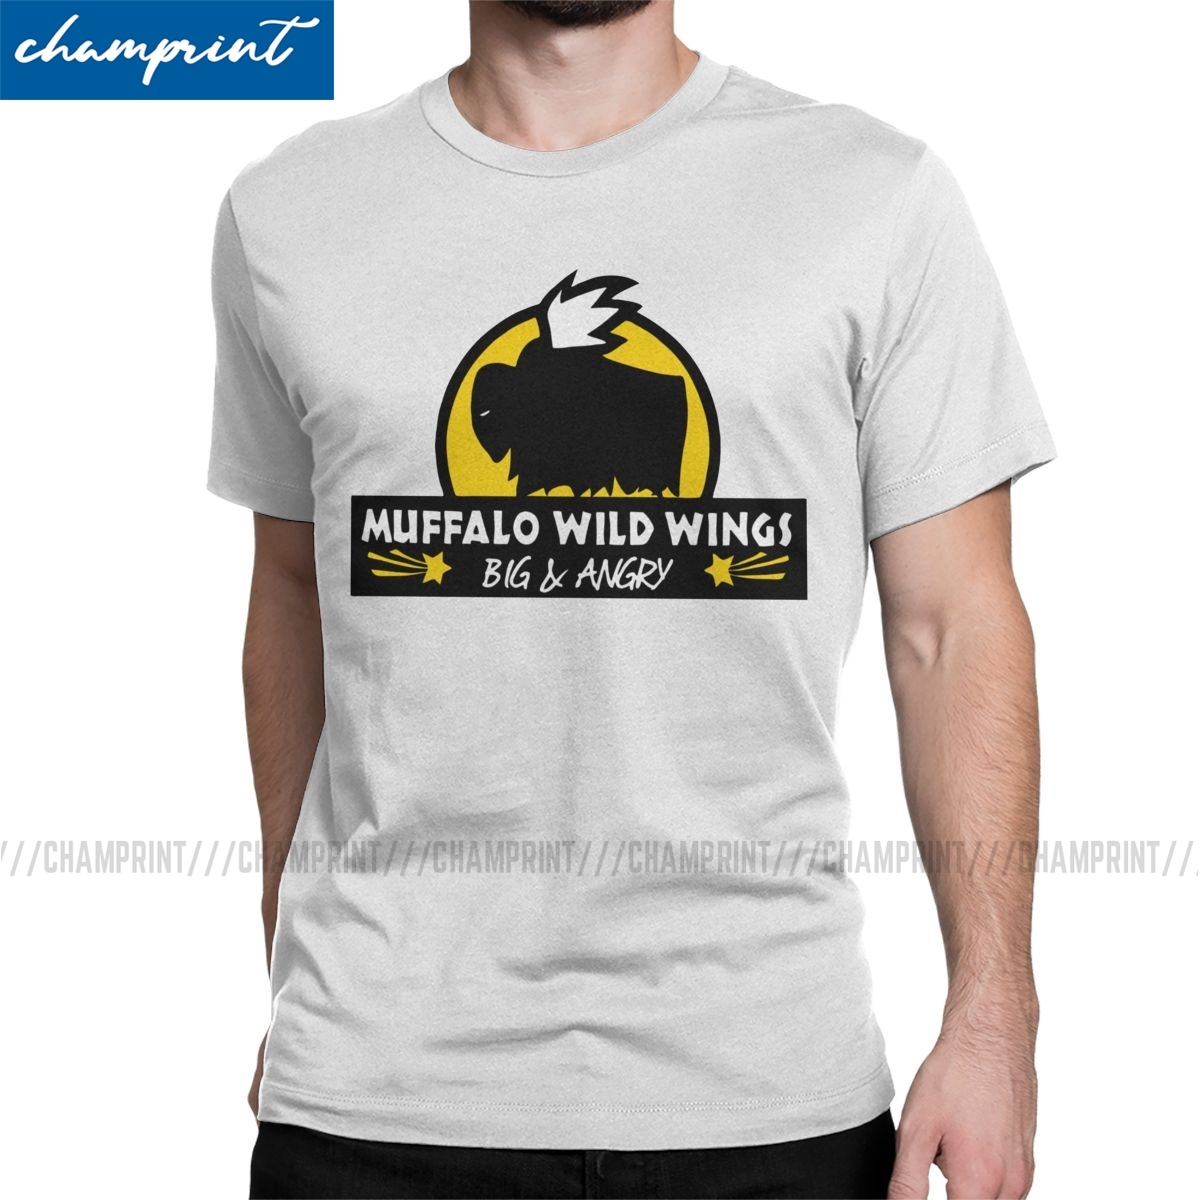 Muffalo Wild Wings T-Shirts for Men Rimworld Rim World Meme Game Humorous Cotton Tee Shirt O Neck T Shirts New Arrival Clothes